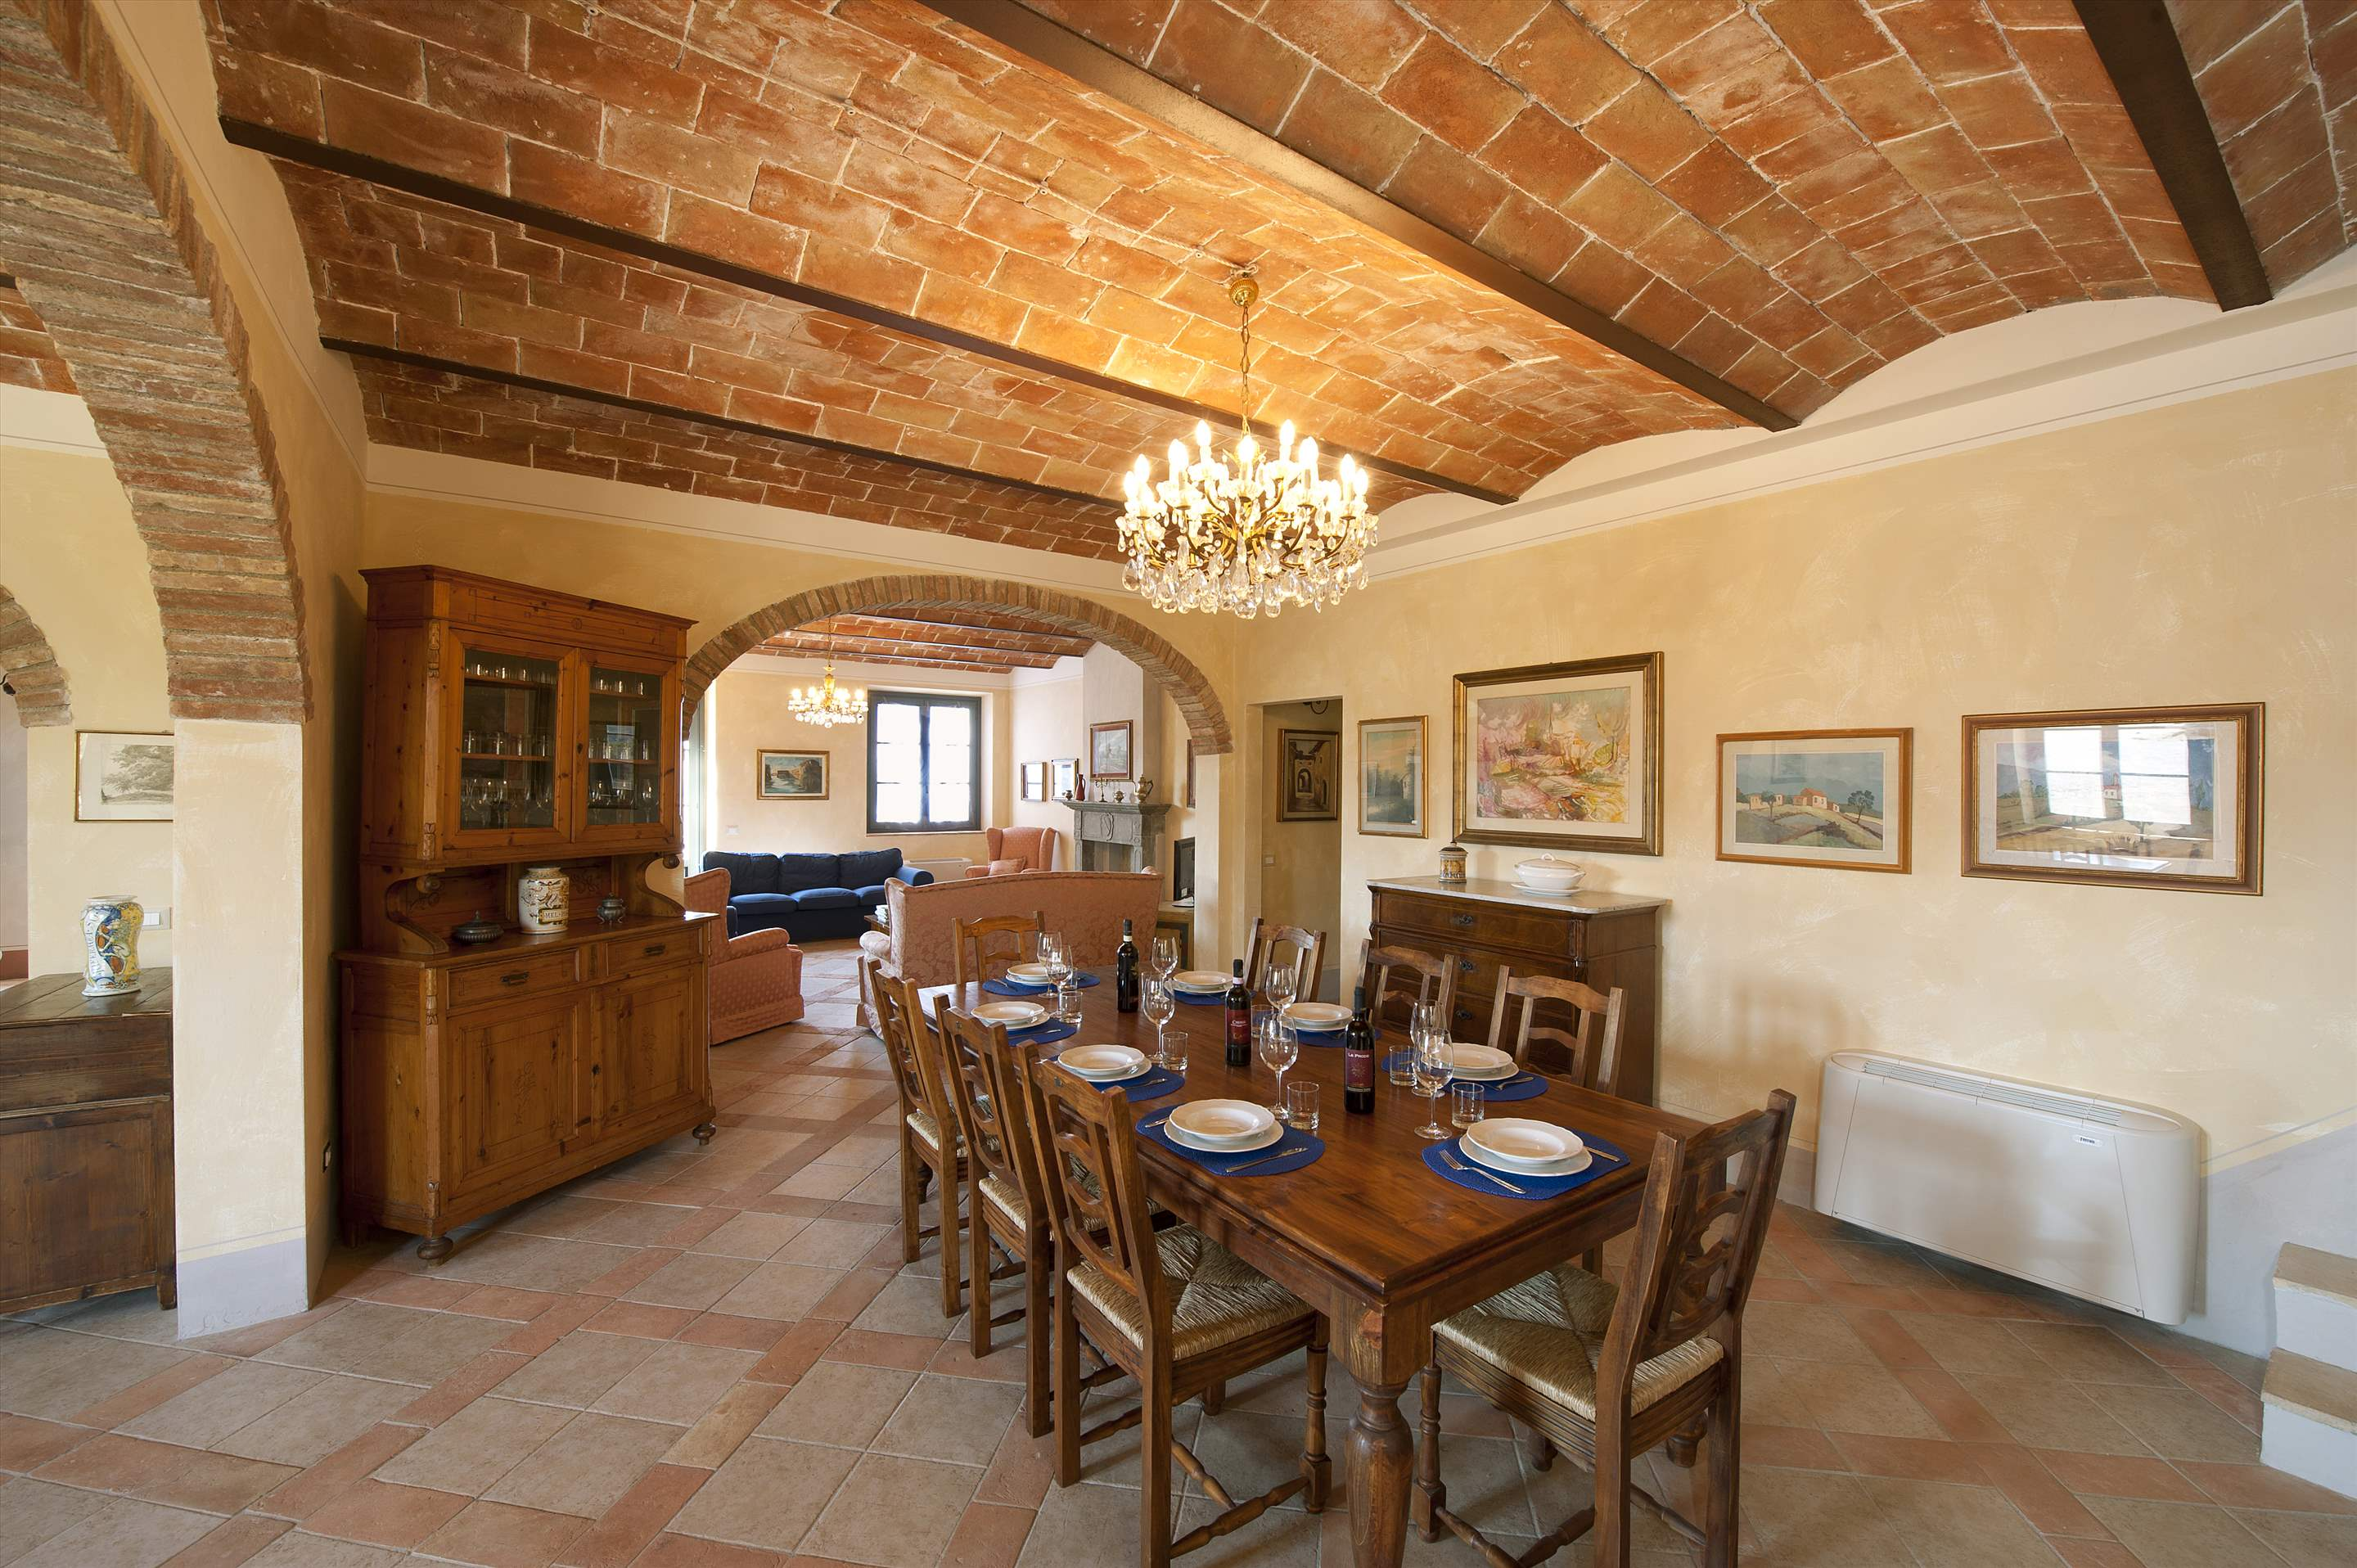 Podere Di Collina, First Floor, 4 bedroom villa in Tuscany Coast, Tuscany Photo #9